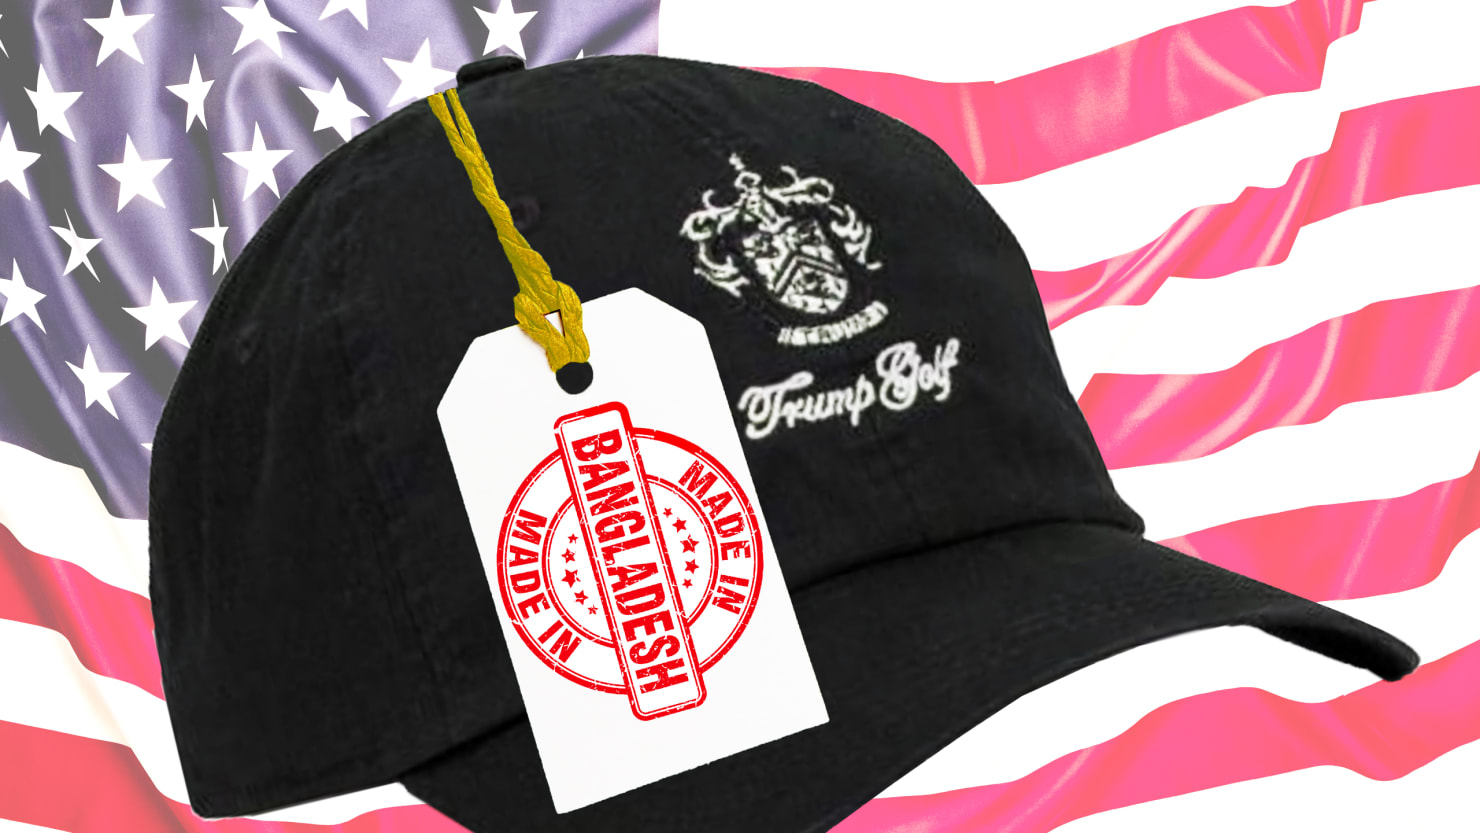 Made in Trump Selling Is Bangladesh and New Merchandise China